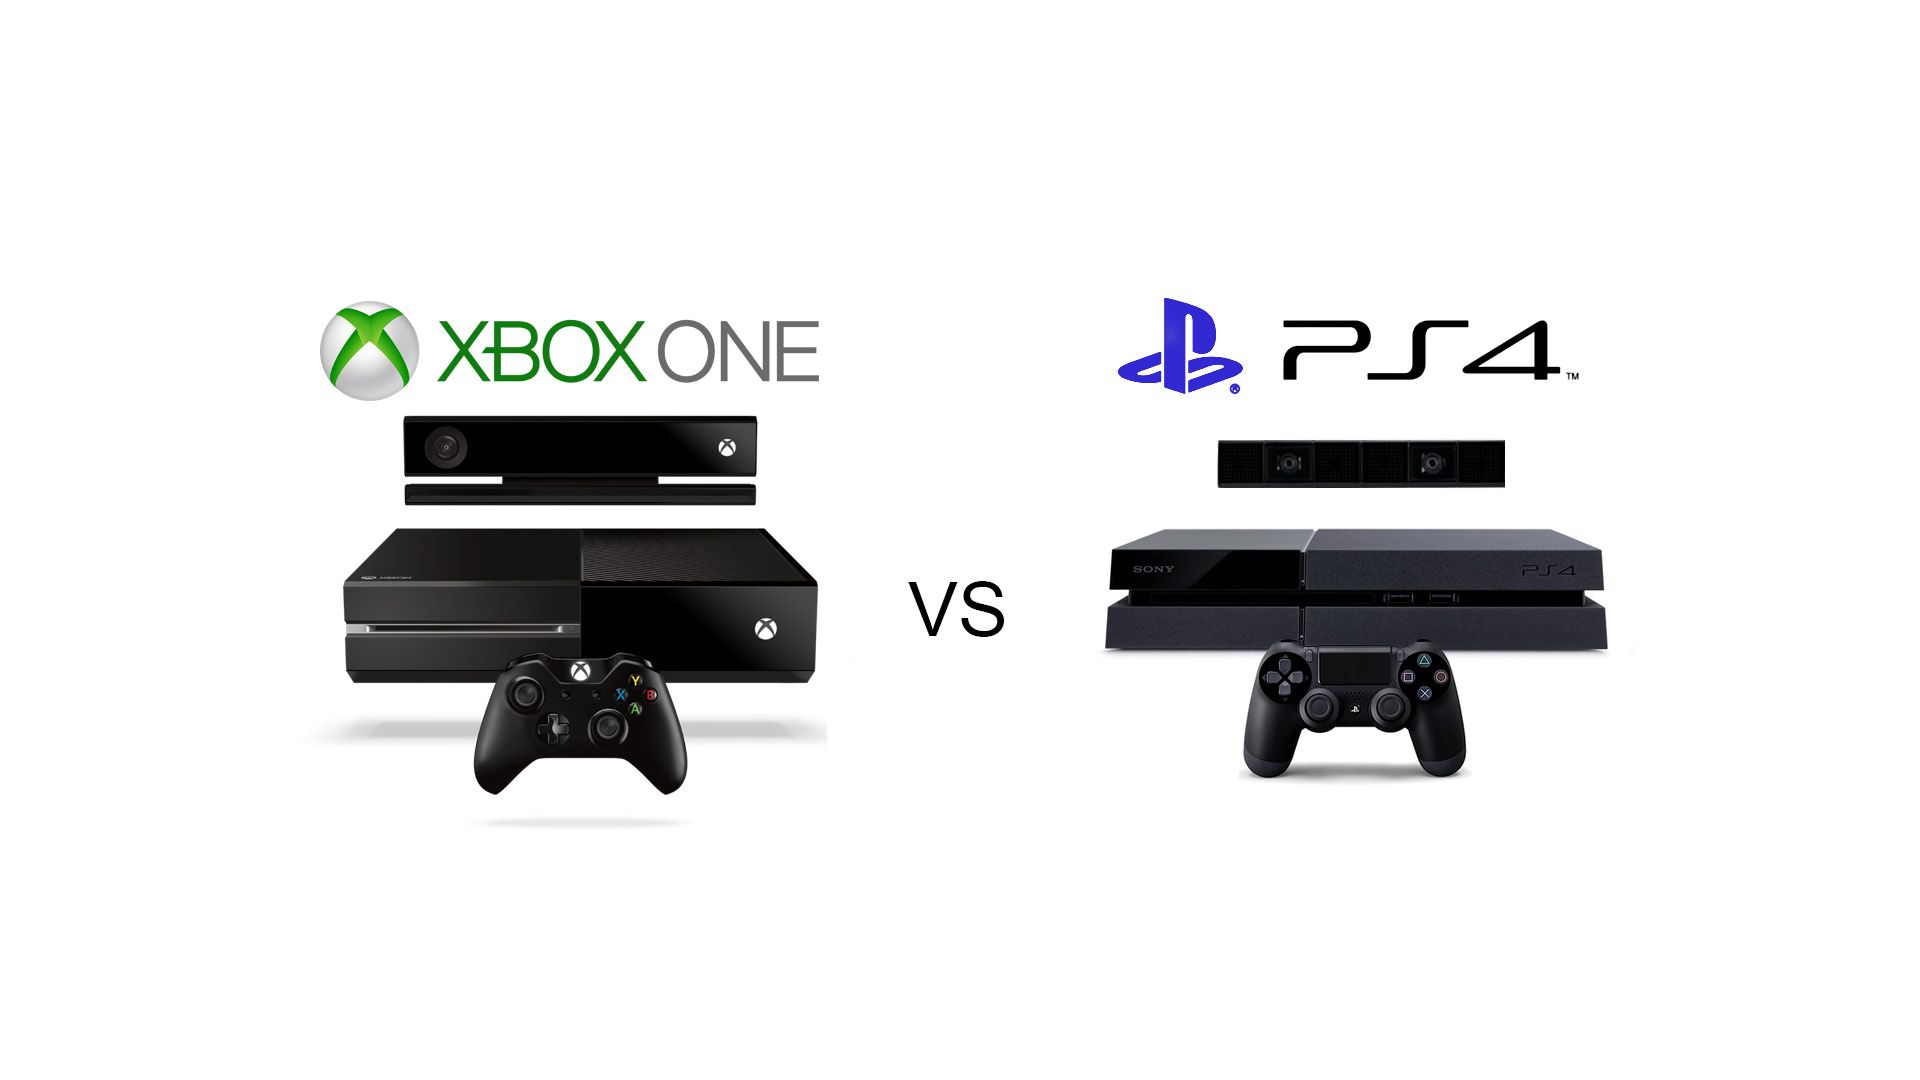 ps4-xbox-one-side-by-side-comparison